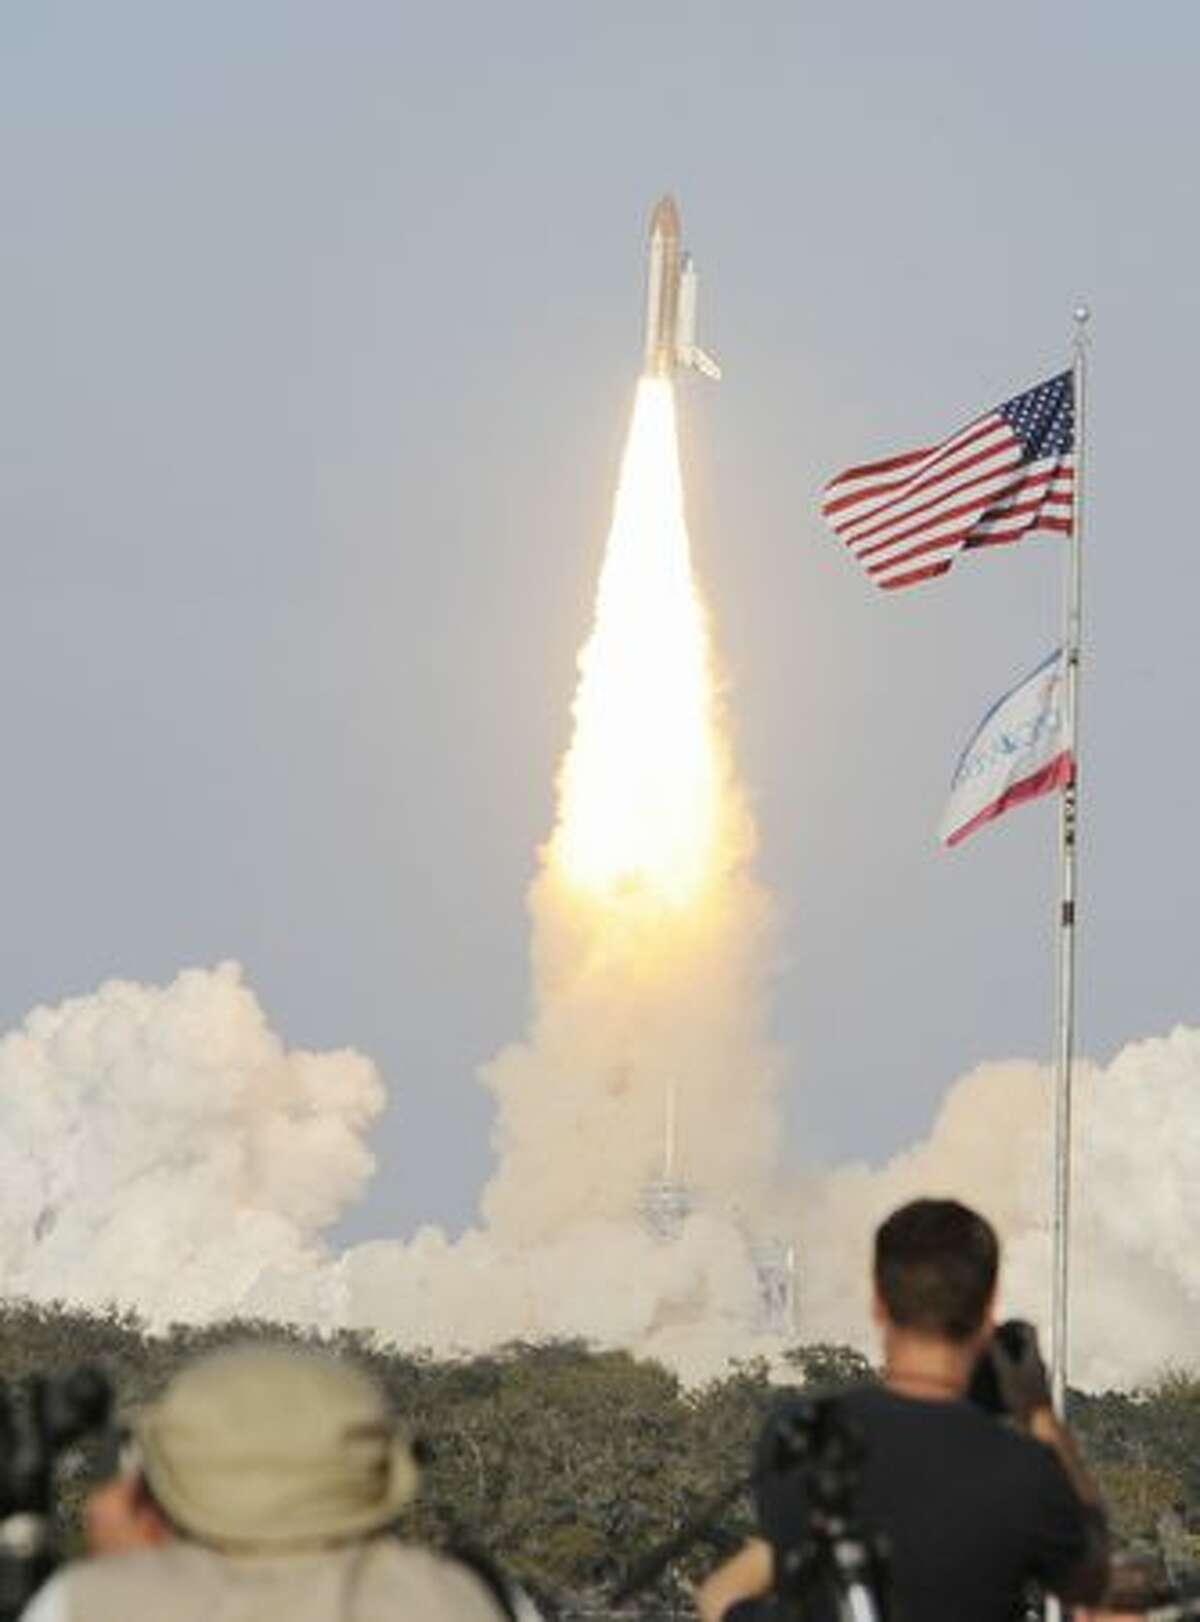 The space shuttle Discovery lifts off Feb. 24 from Kennedy Space Center in Florida on a mission to the International Space Station. It is the 39th and final flight for Discovery.